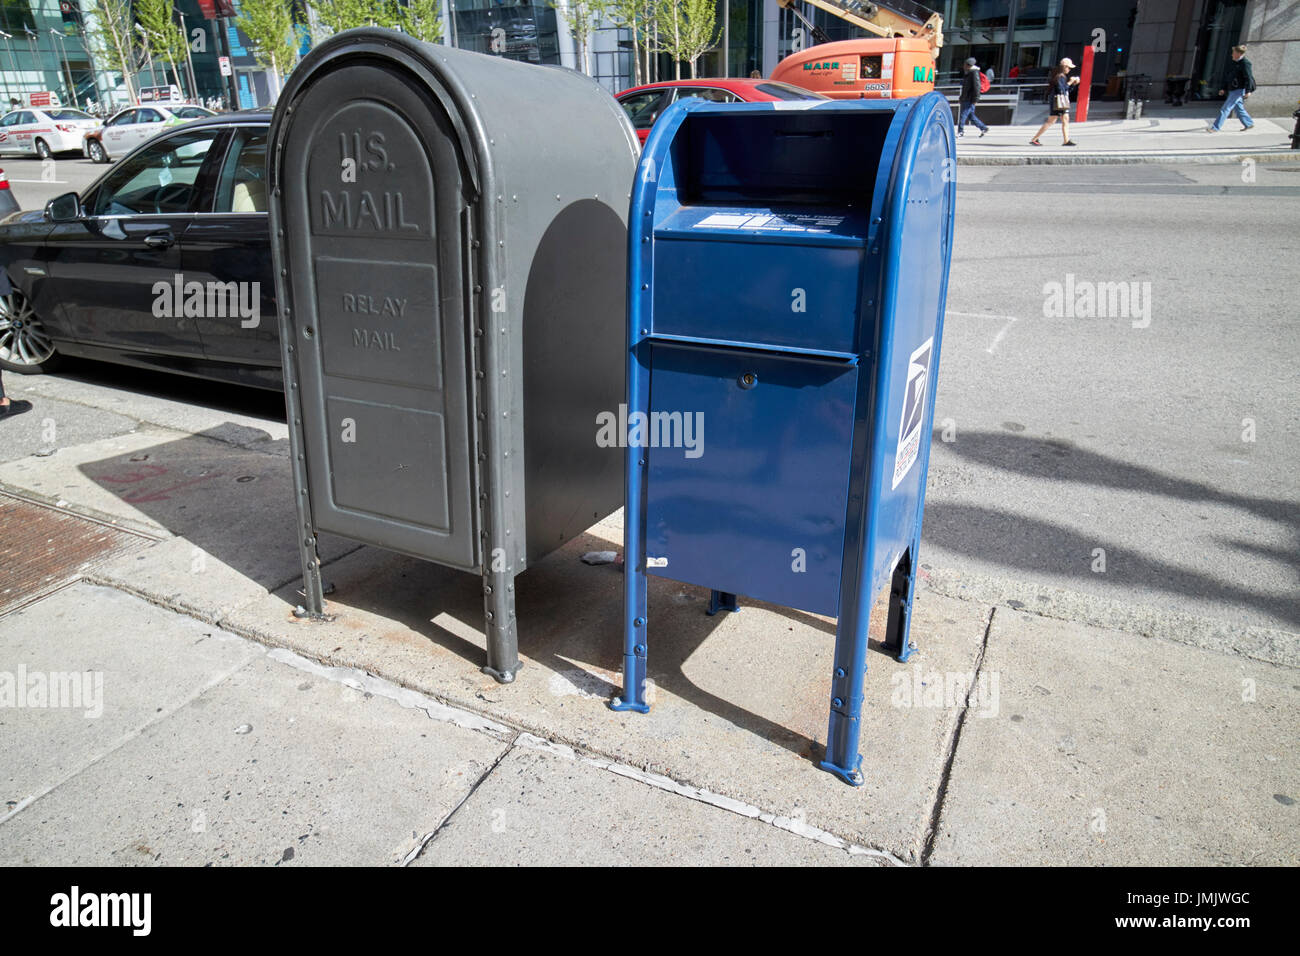 us postal service blue mailbox dropbox and grey relay mail box on sidewalk Boston USA - Stock Image